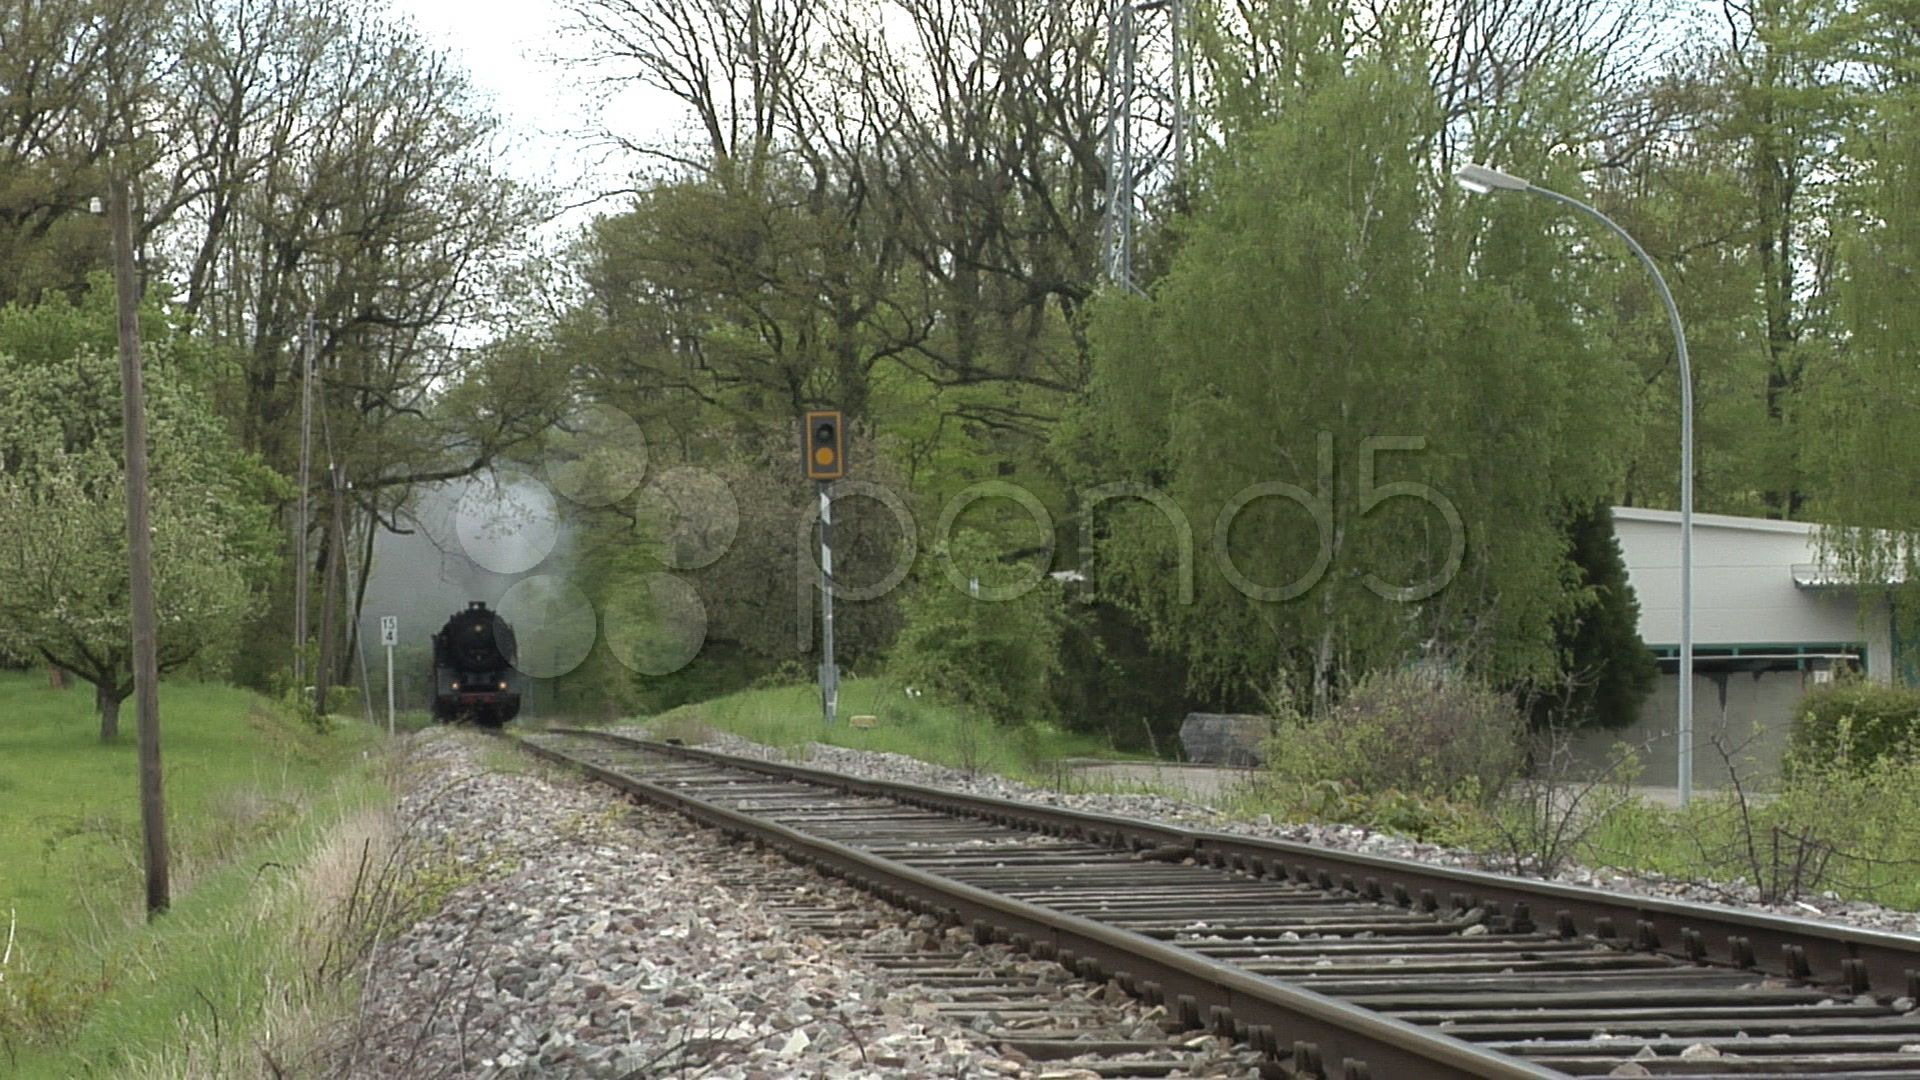 HD - $65 - Steam train coming - Stock Footage | by varius